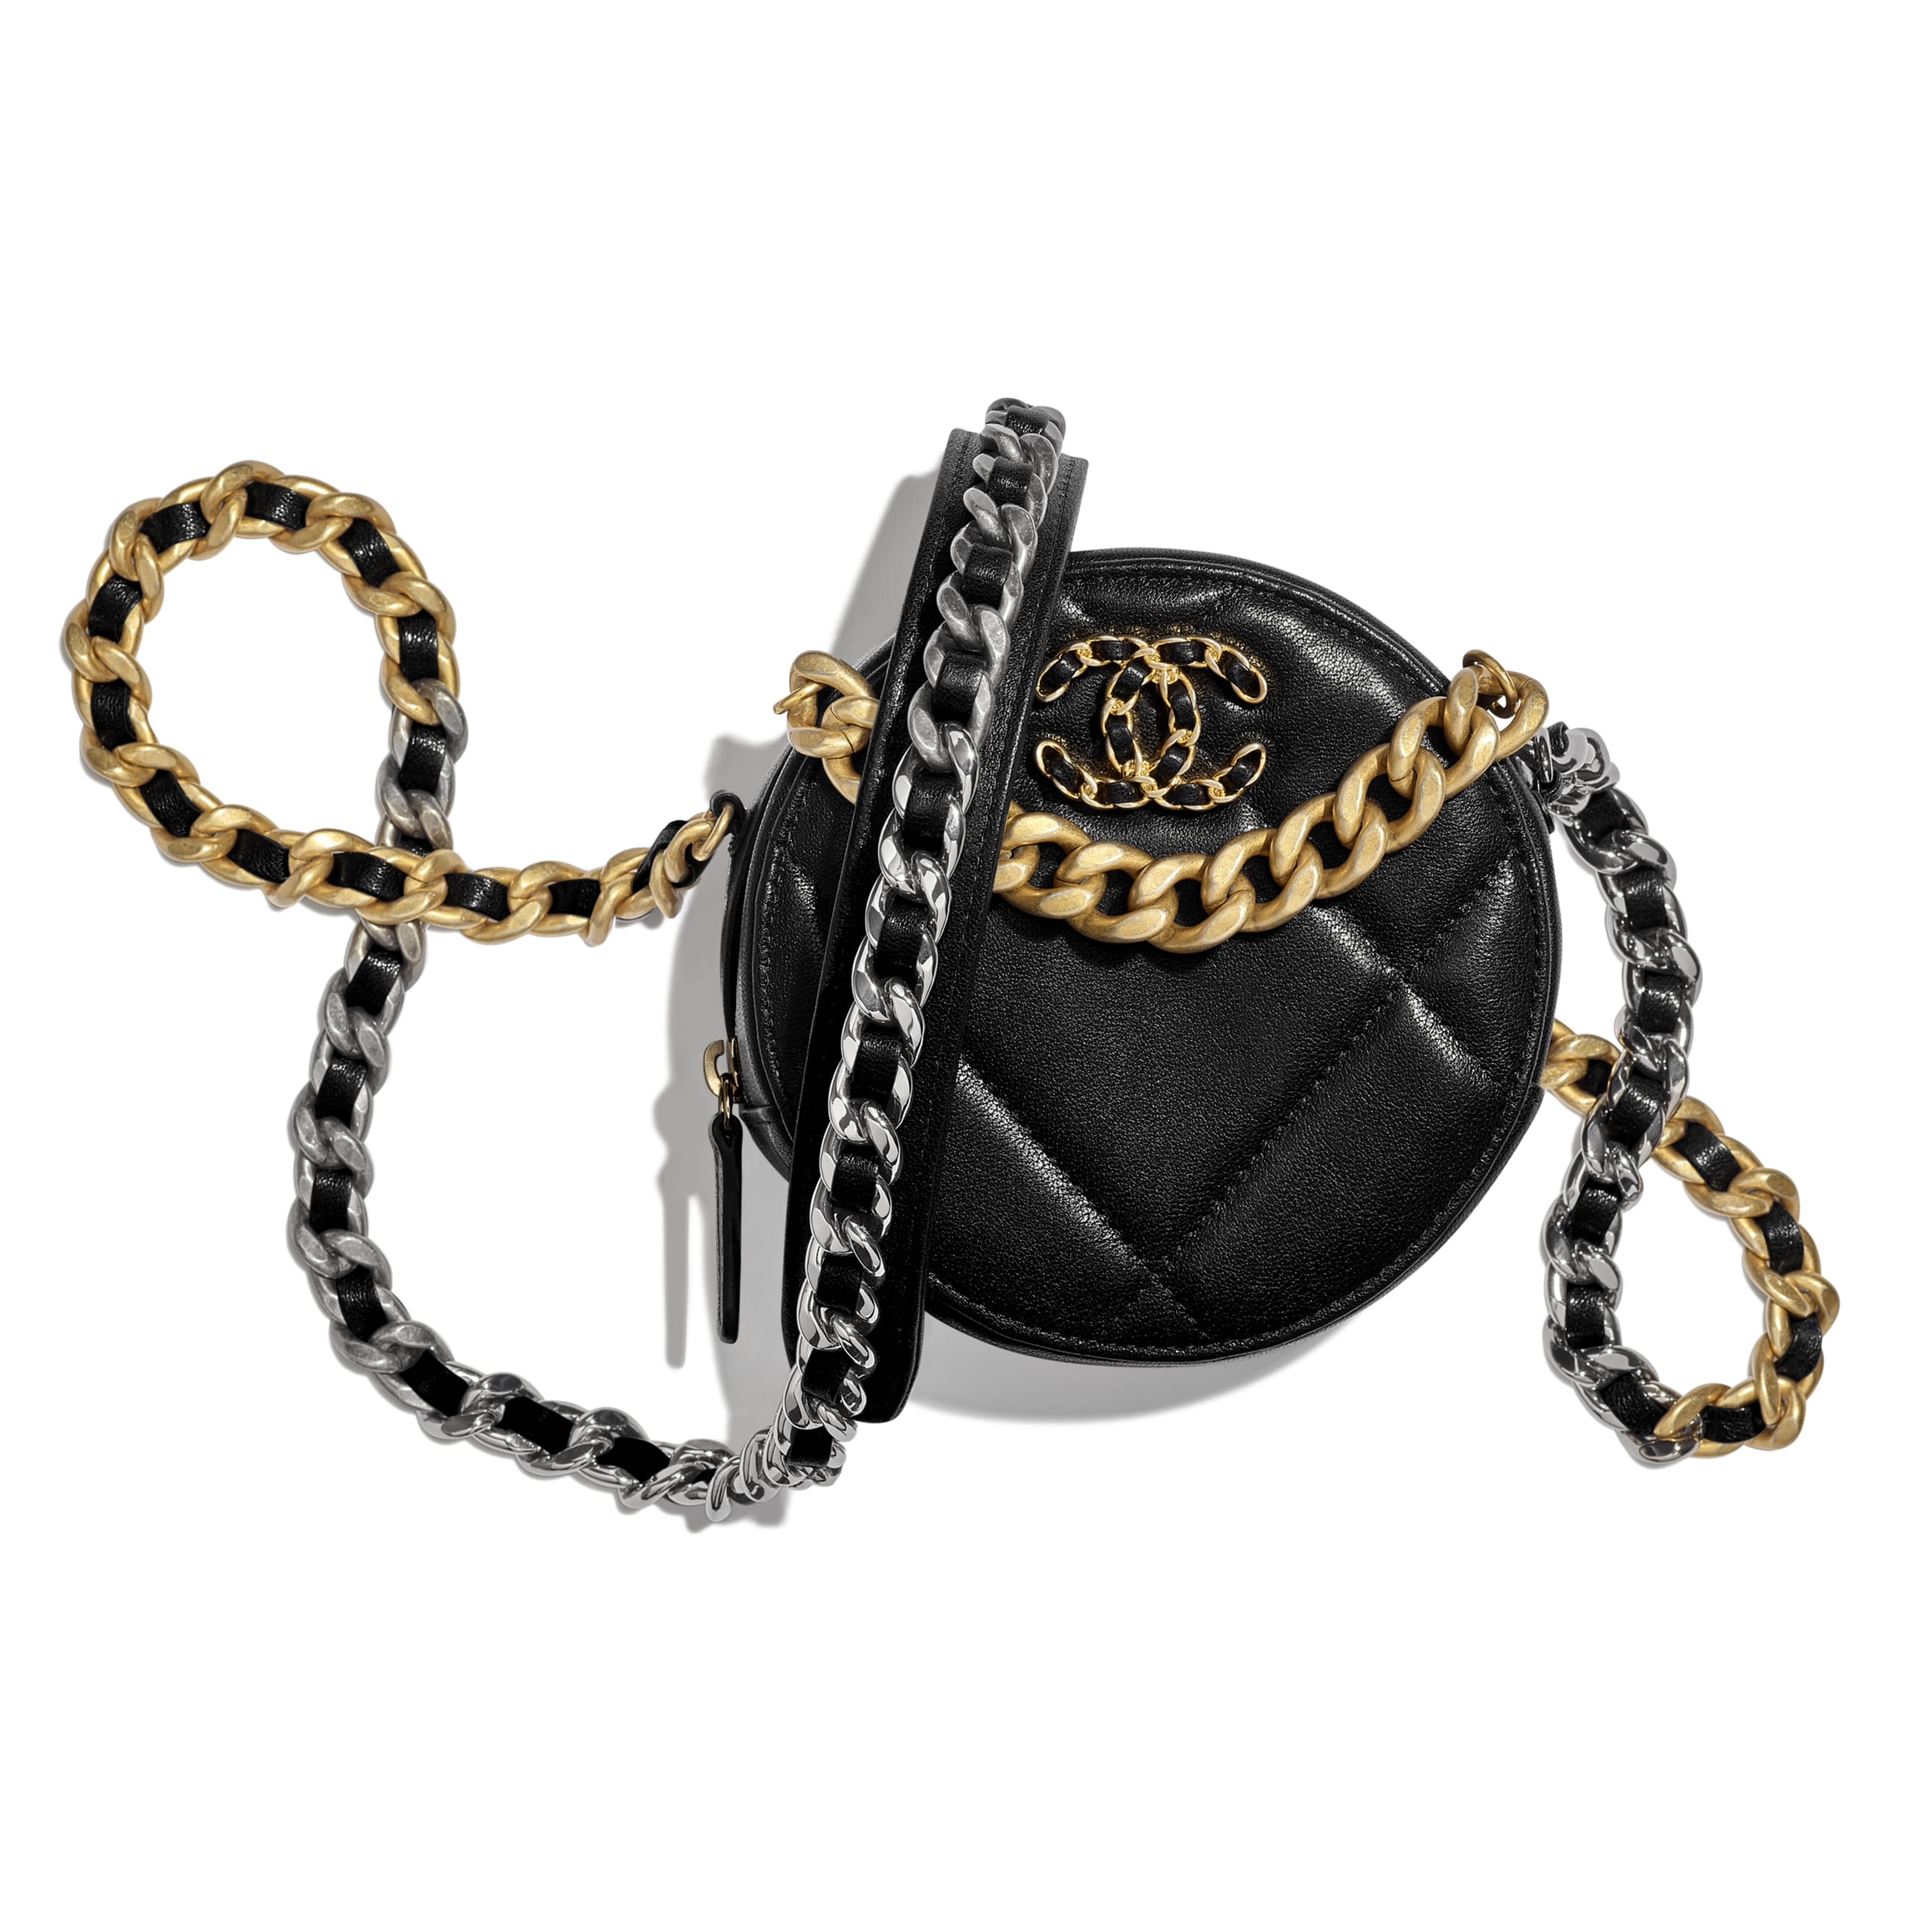 CHANEL 19 Clutch with Chain - Black - Lambskin, Gold-Tone, Silver-Tone & Ruthenium-Finish Metal - Default view - see standard sized version